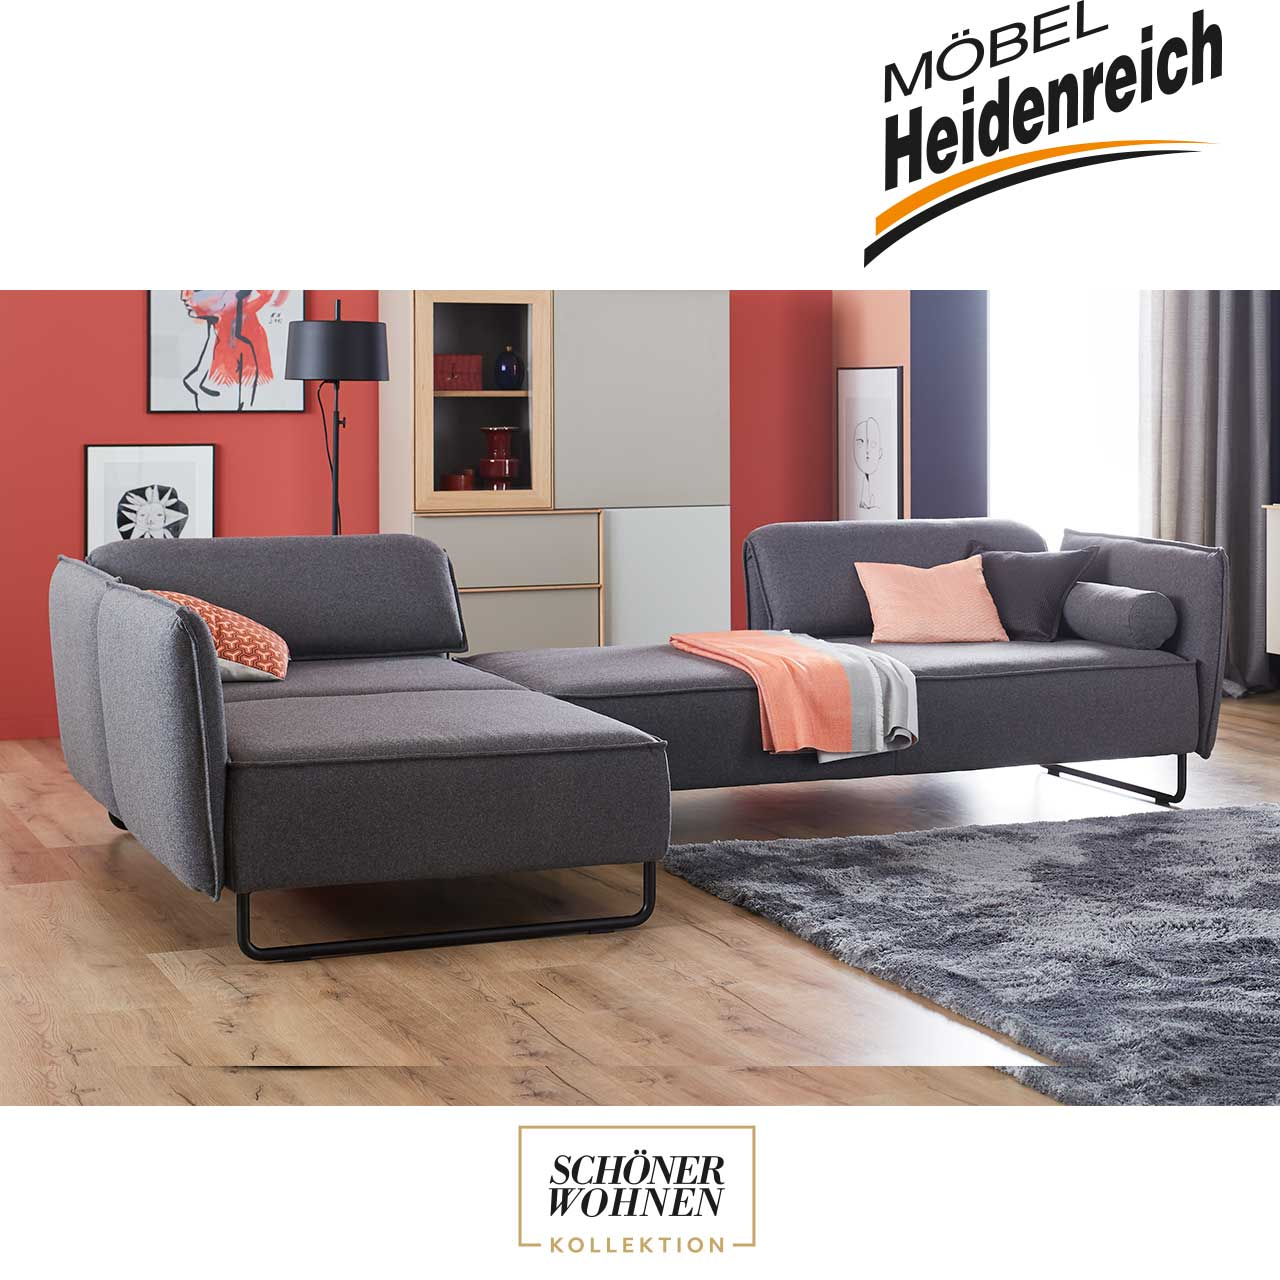 sch ner wohnen sofa vision m bel heidenreich. Black Bedroom Furniture Sets. Home Design Ideas